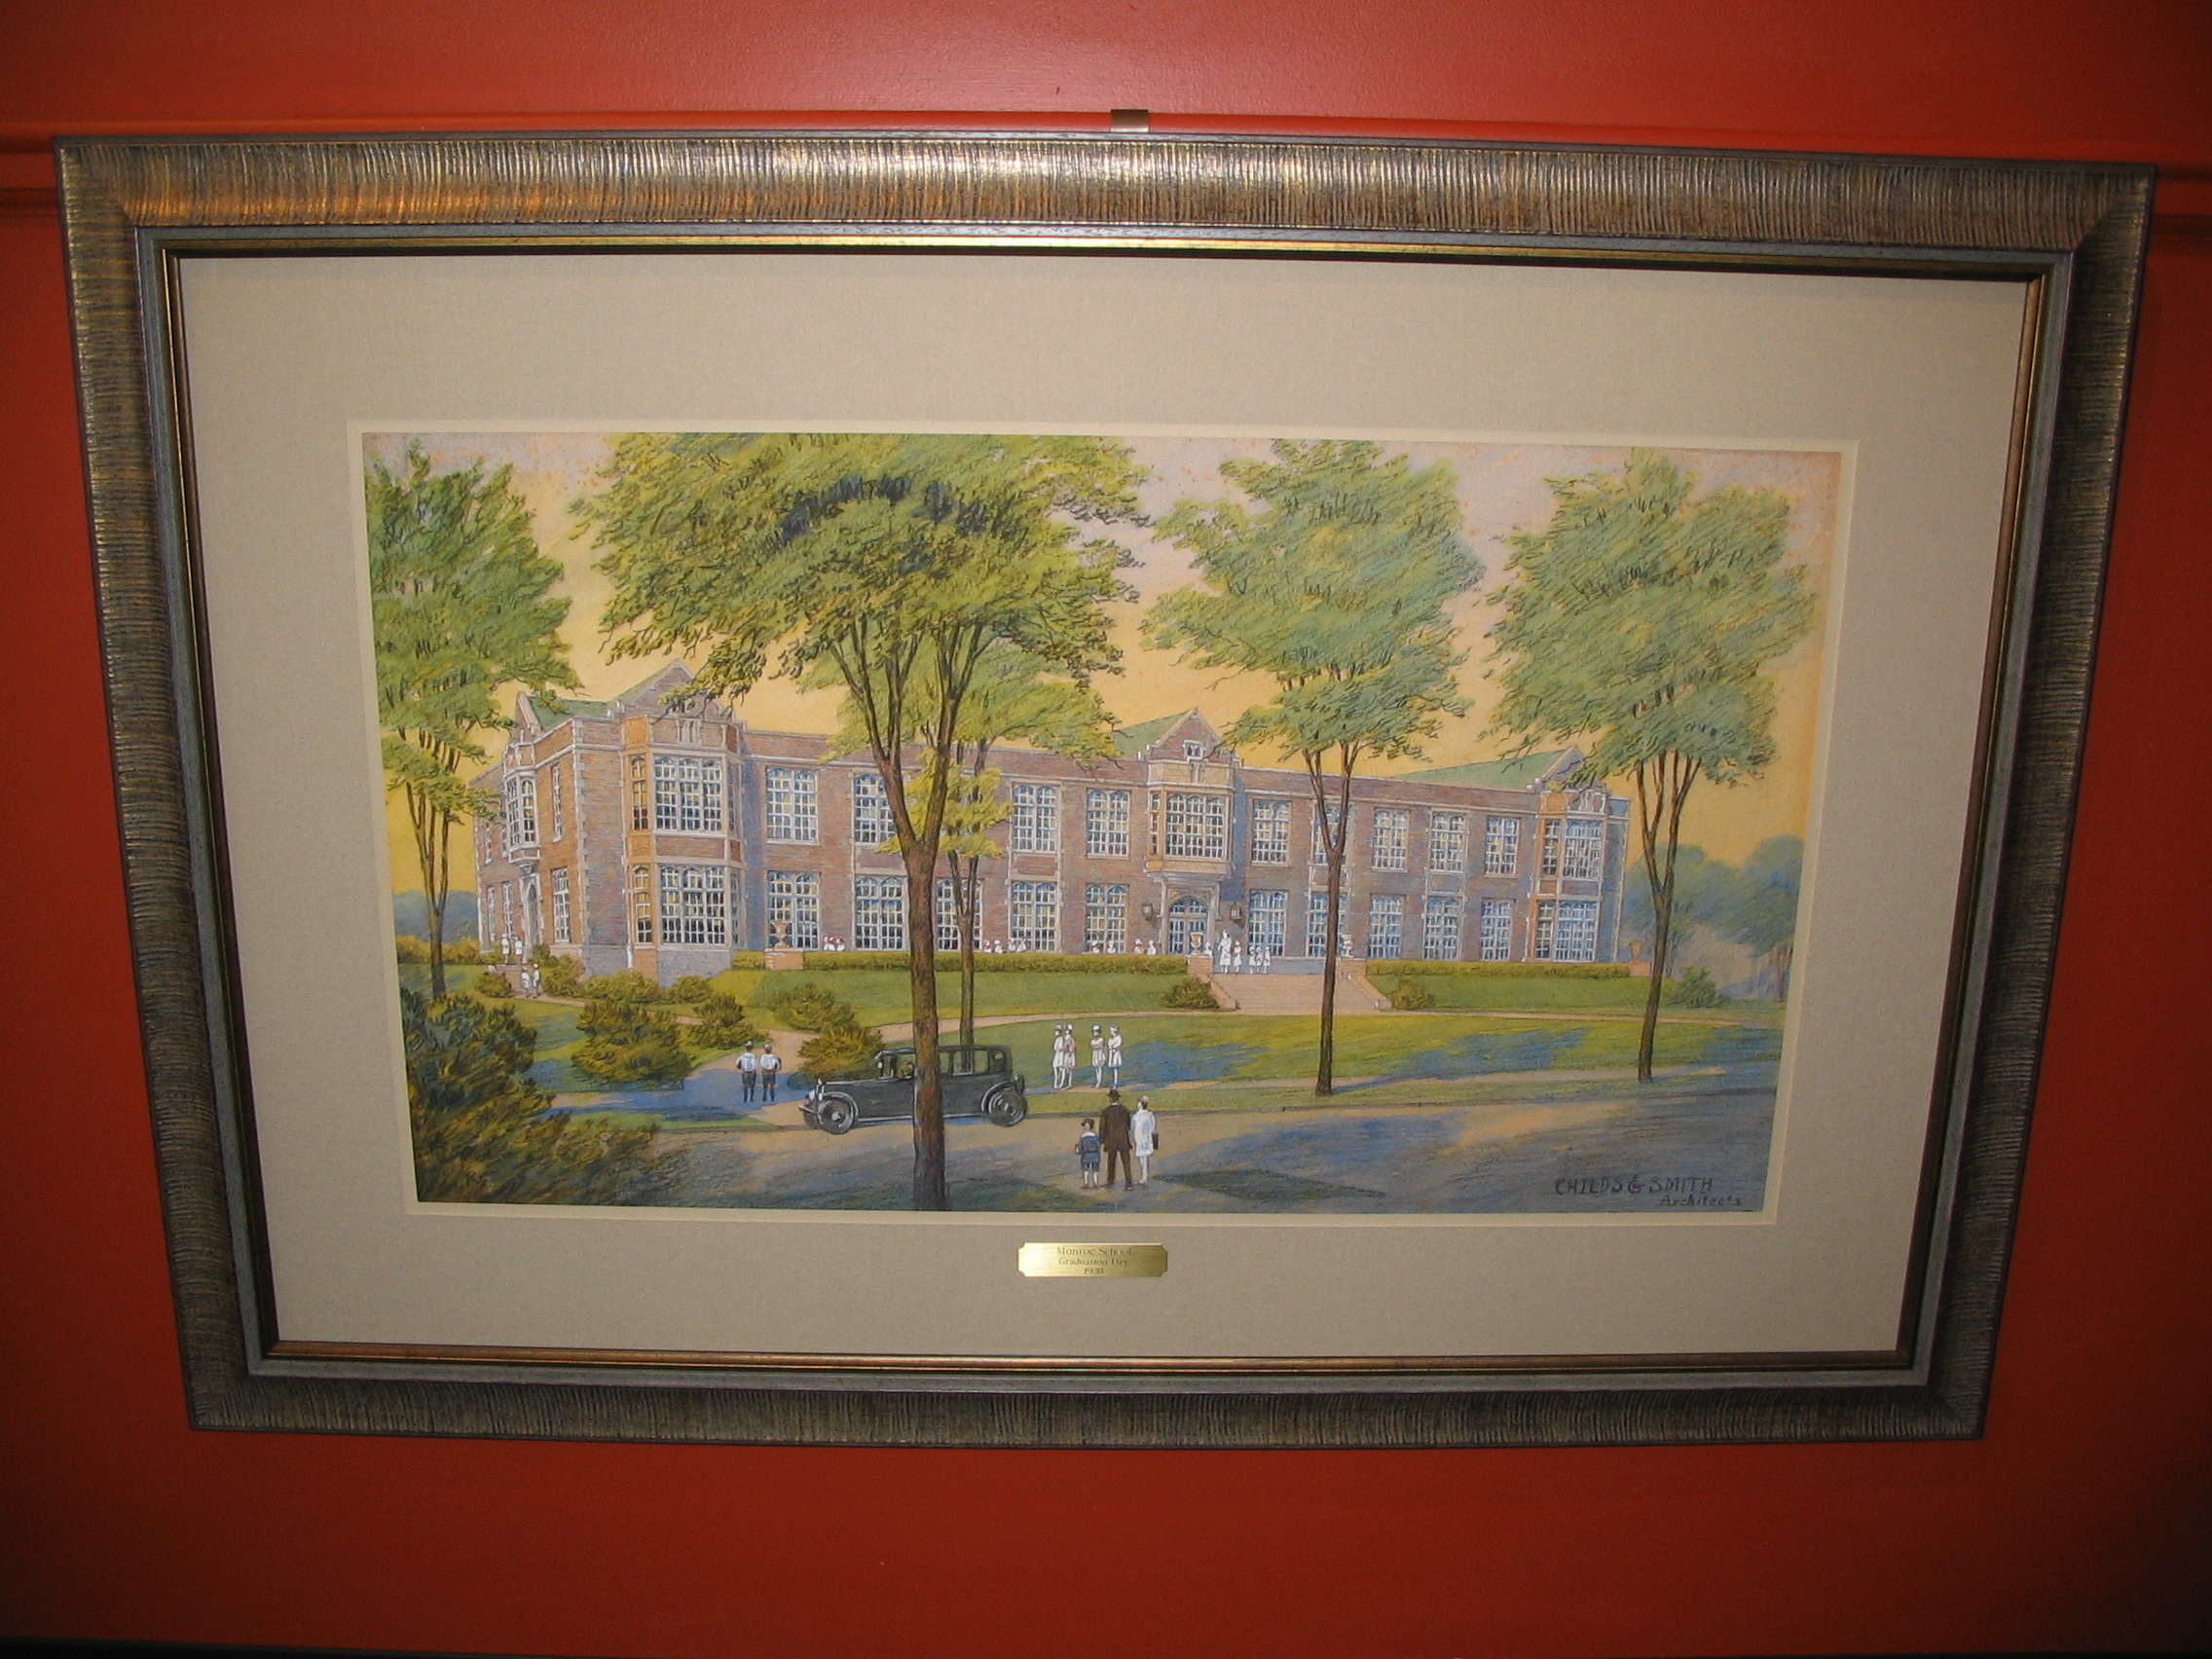 College campus framed by The Framemakers